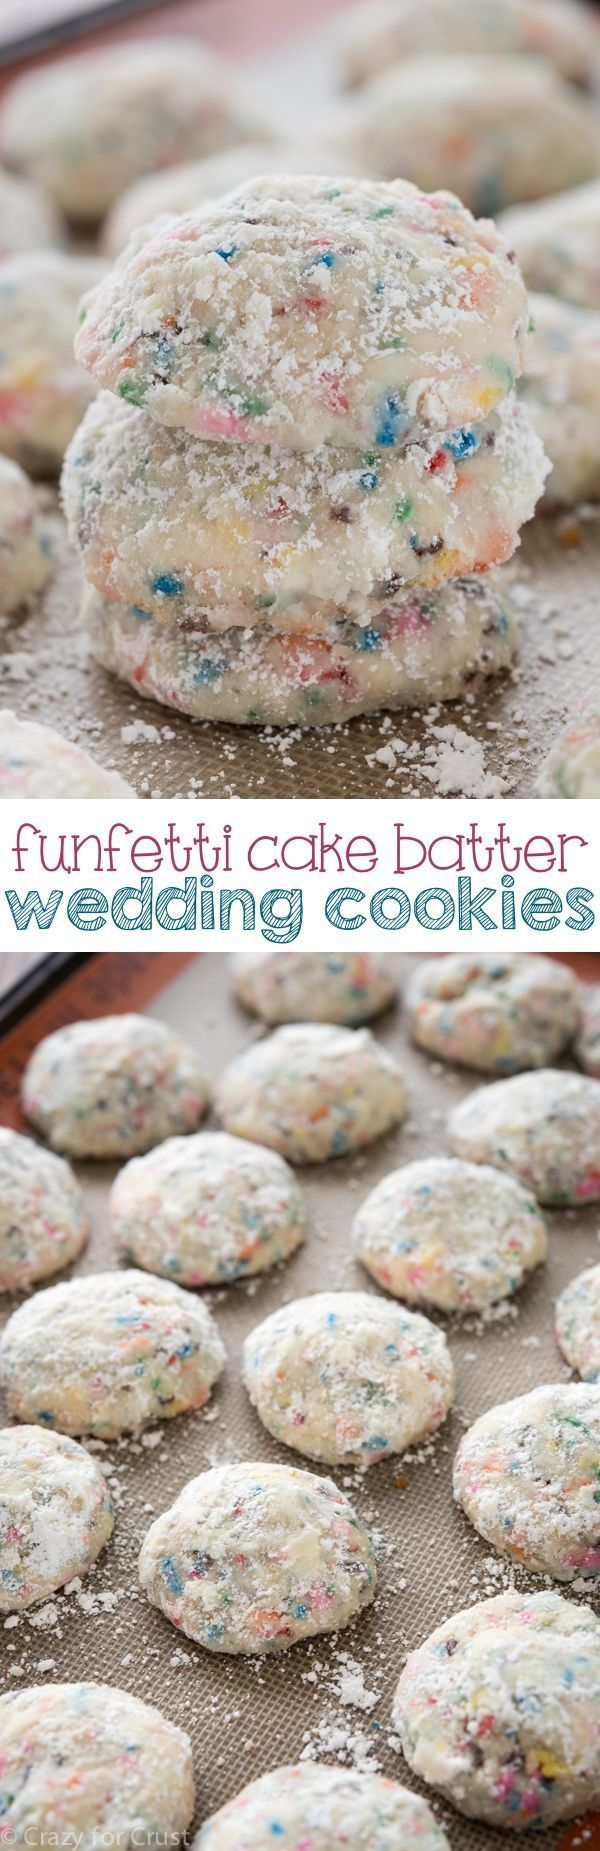 Easy Funfetti Cake Batter Wedding Cookies - my mom's recipe for Russian Tea Cakes made with cake batter funfetti flavor!